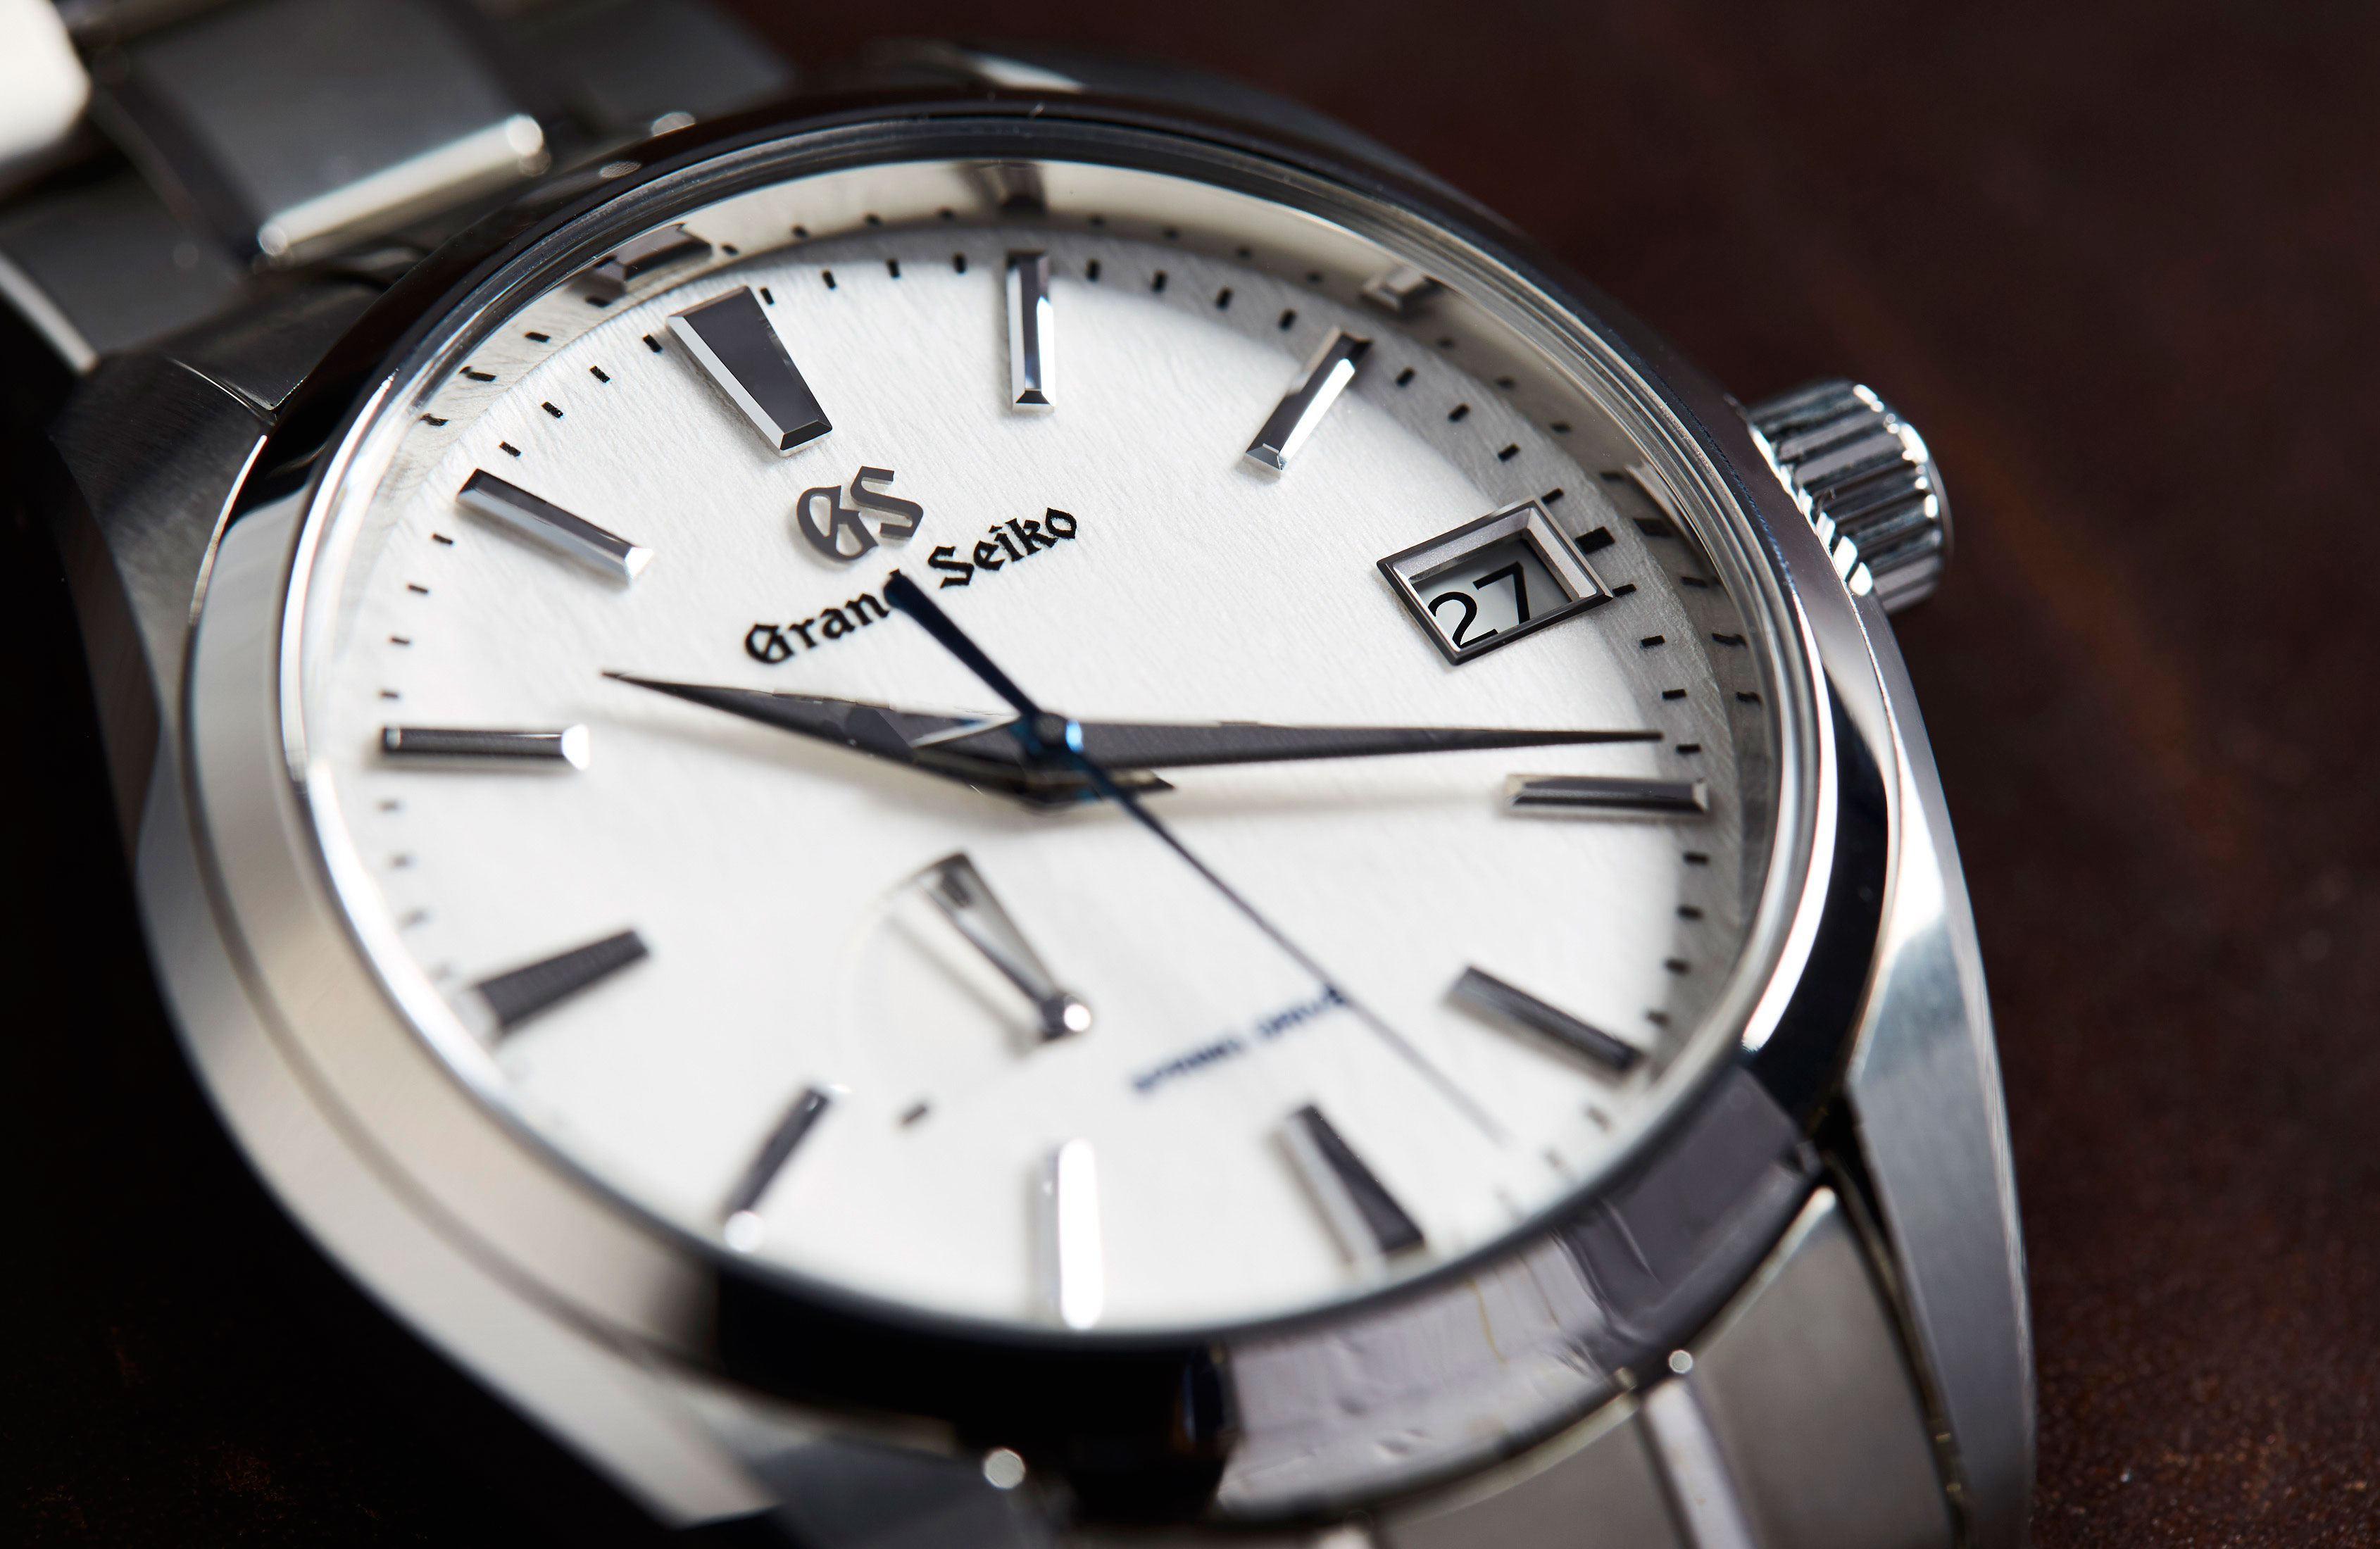 first on seiko watches grand wrist review ambwatches my